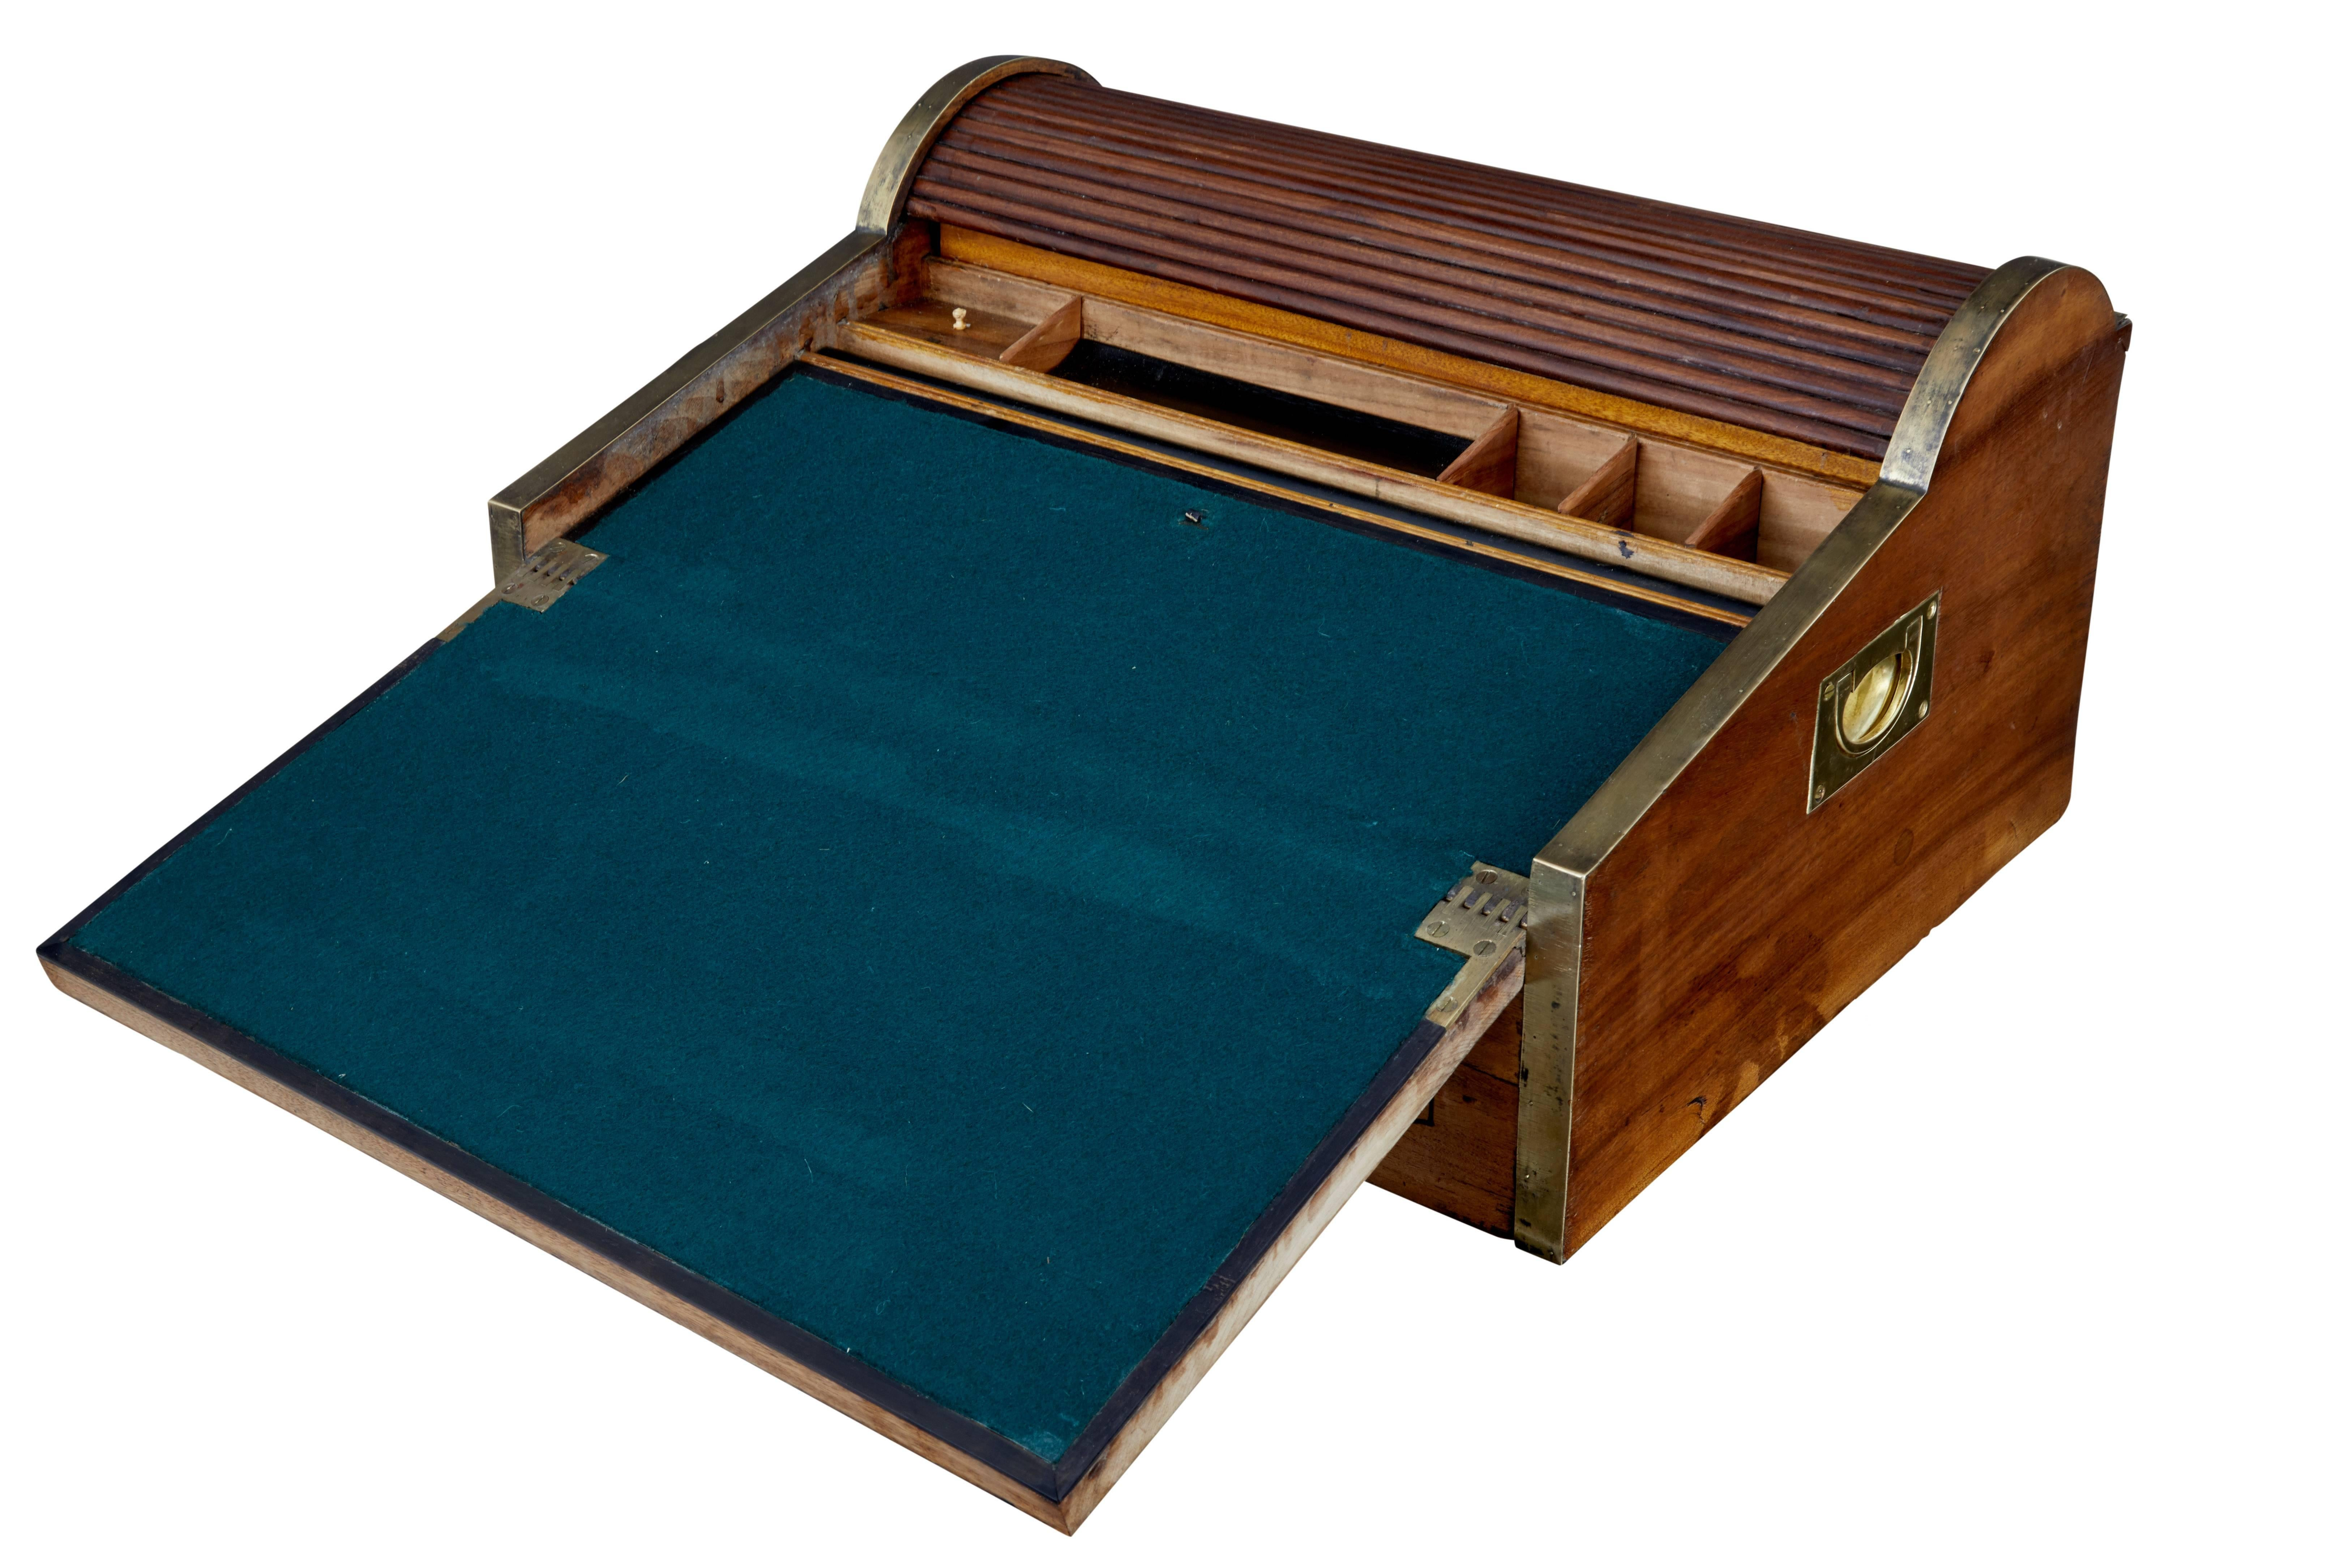 Quality Chinese Export Camphor Wood Lap Desk, Circa 1820. Made For Sea  Captains And